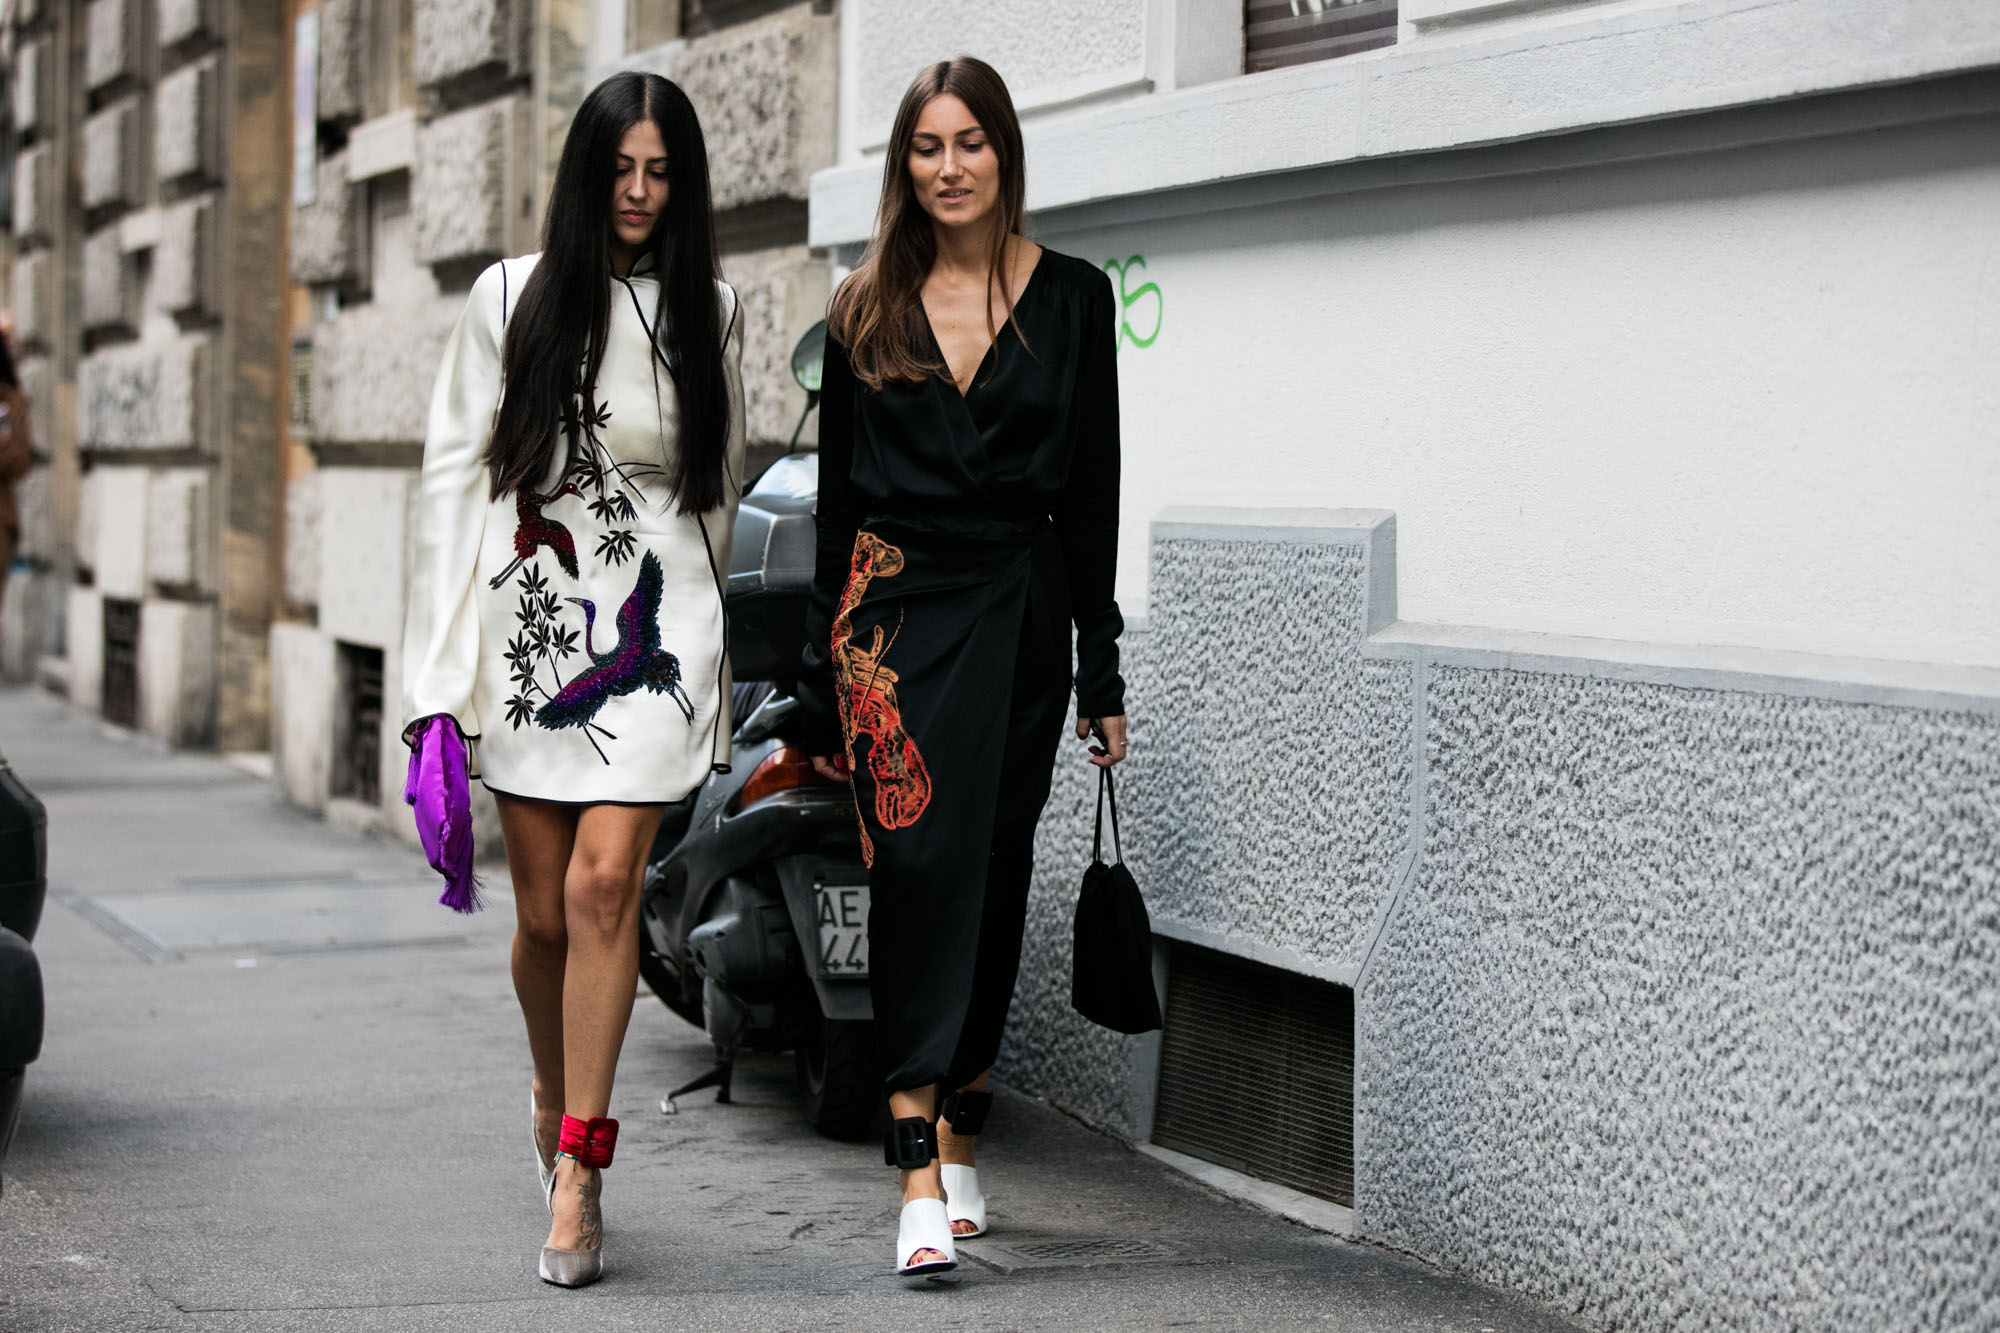 milanfw_ss2017_day2-20160921-3797